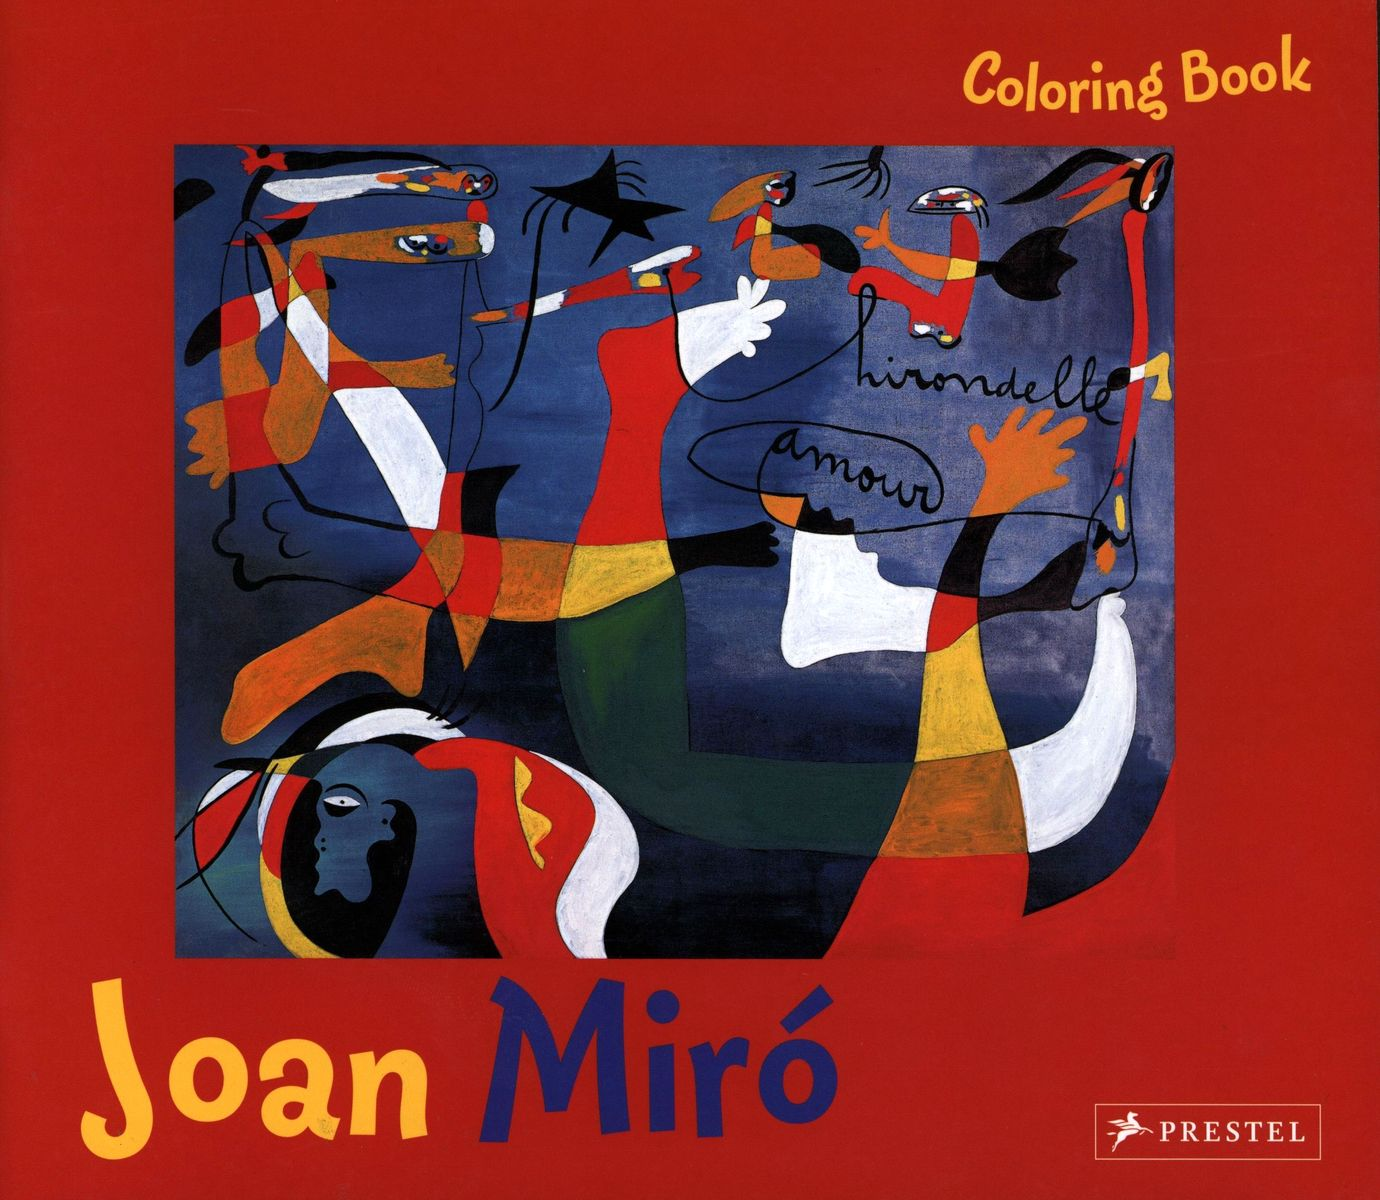 Coloring Book Joan Mir? по 369.00 руб от изд. Prestel